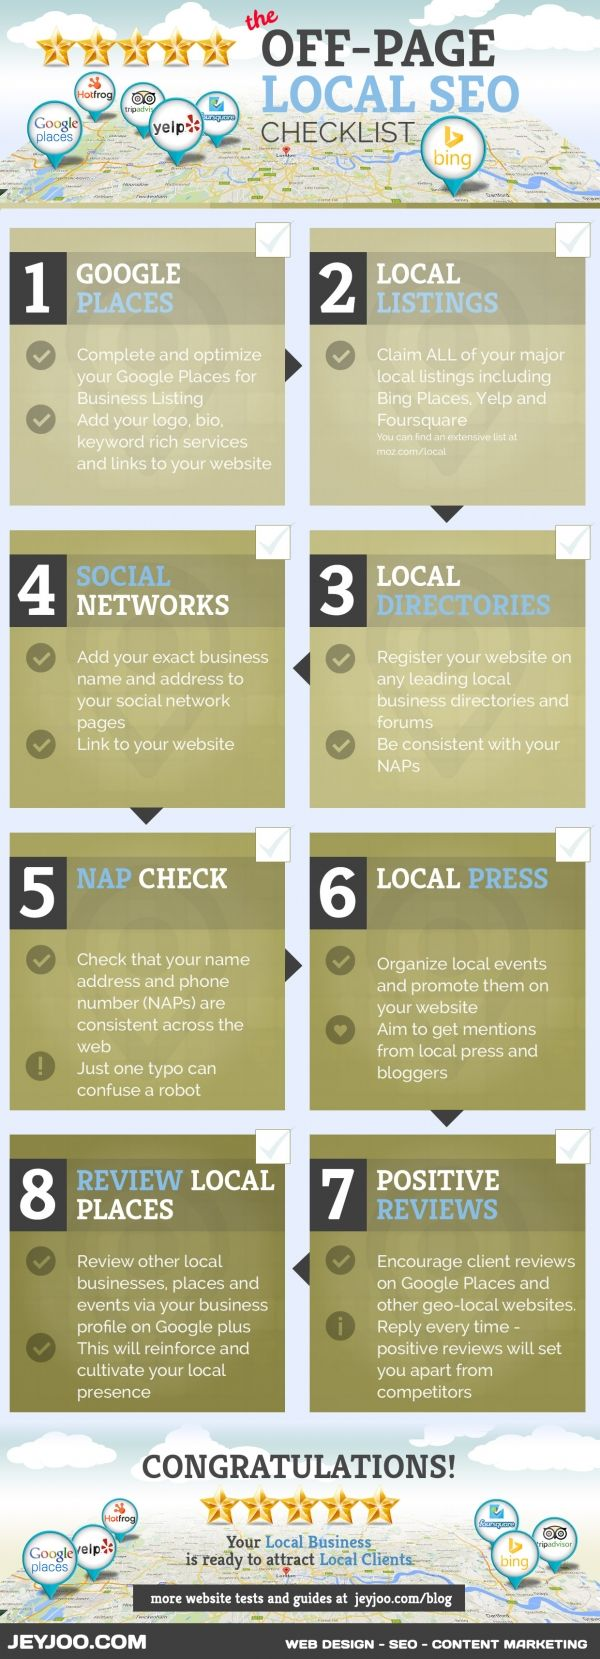 The Off Page Seo Checklist For Local Business Get Your Business Noticed Expert Seo Advice To Help Your Local Busin Local Seo Search Marketing Local Marketing